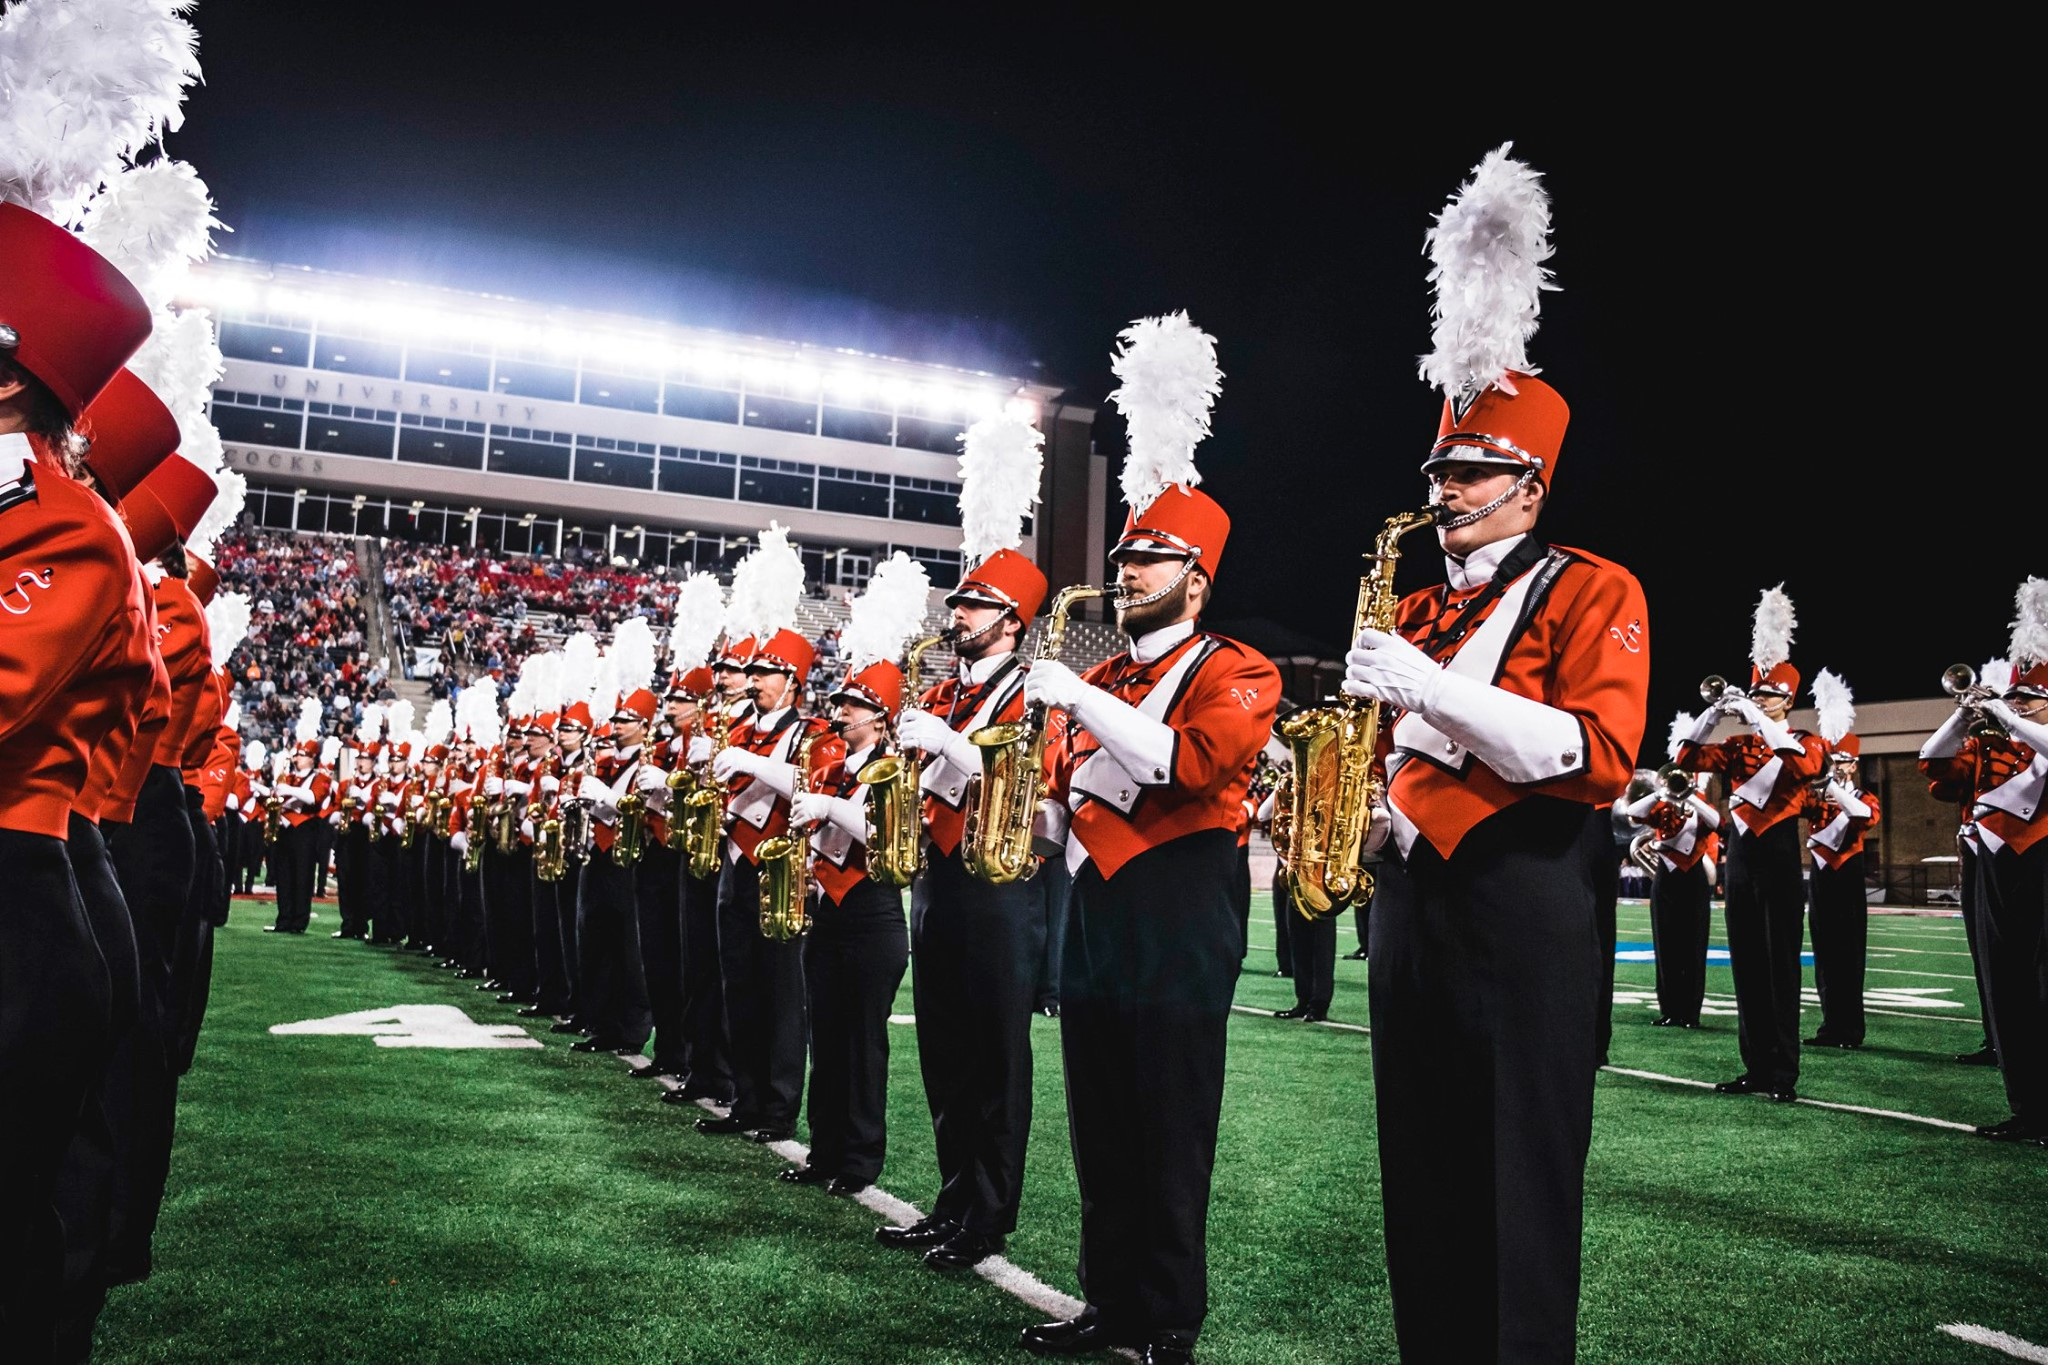 The Marching Southerners perform at the Contest of Champions on Saturday, October 12. (Sydney Williams/JSU)